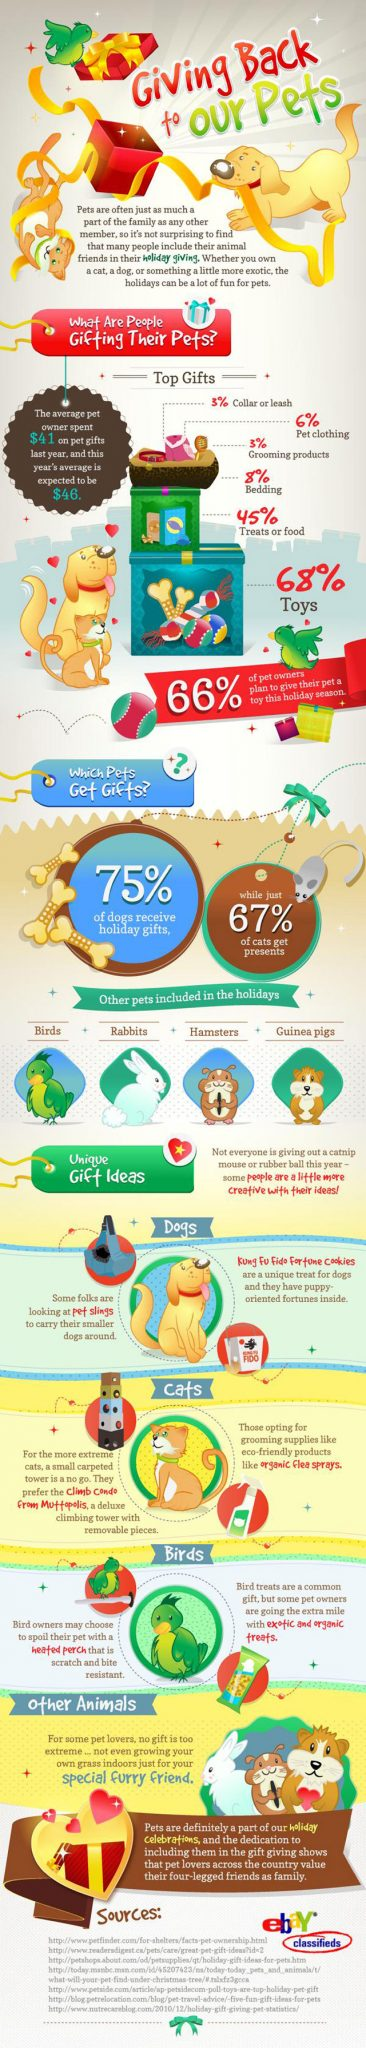 Giving Back To Our Pets On The Holidays: Infographic